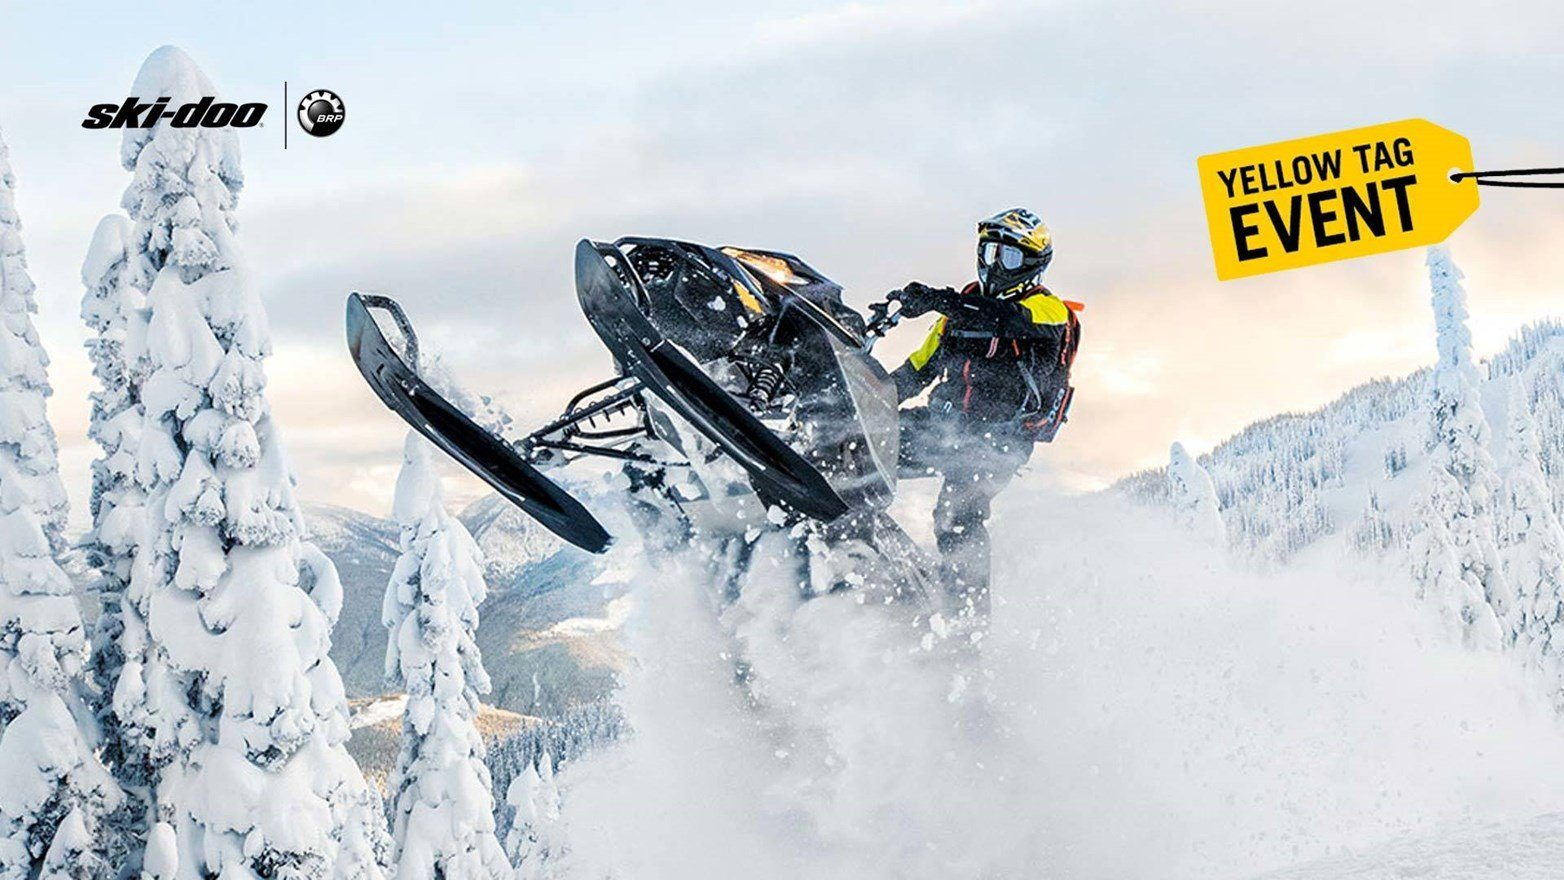 Ski-Doo - Yellow Tag Sales Event - Rebate